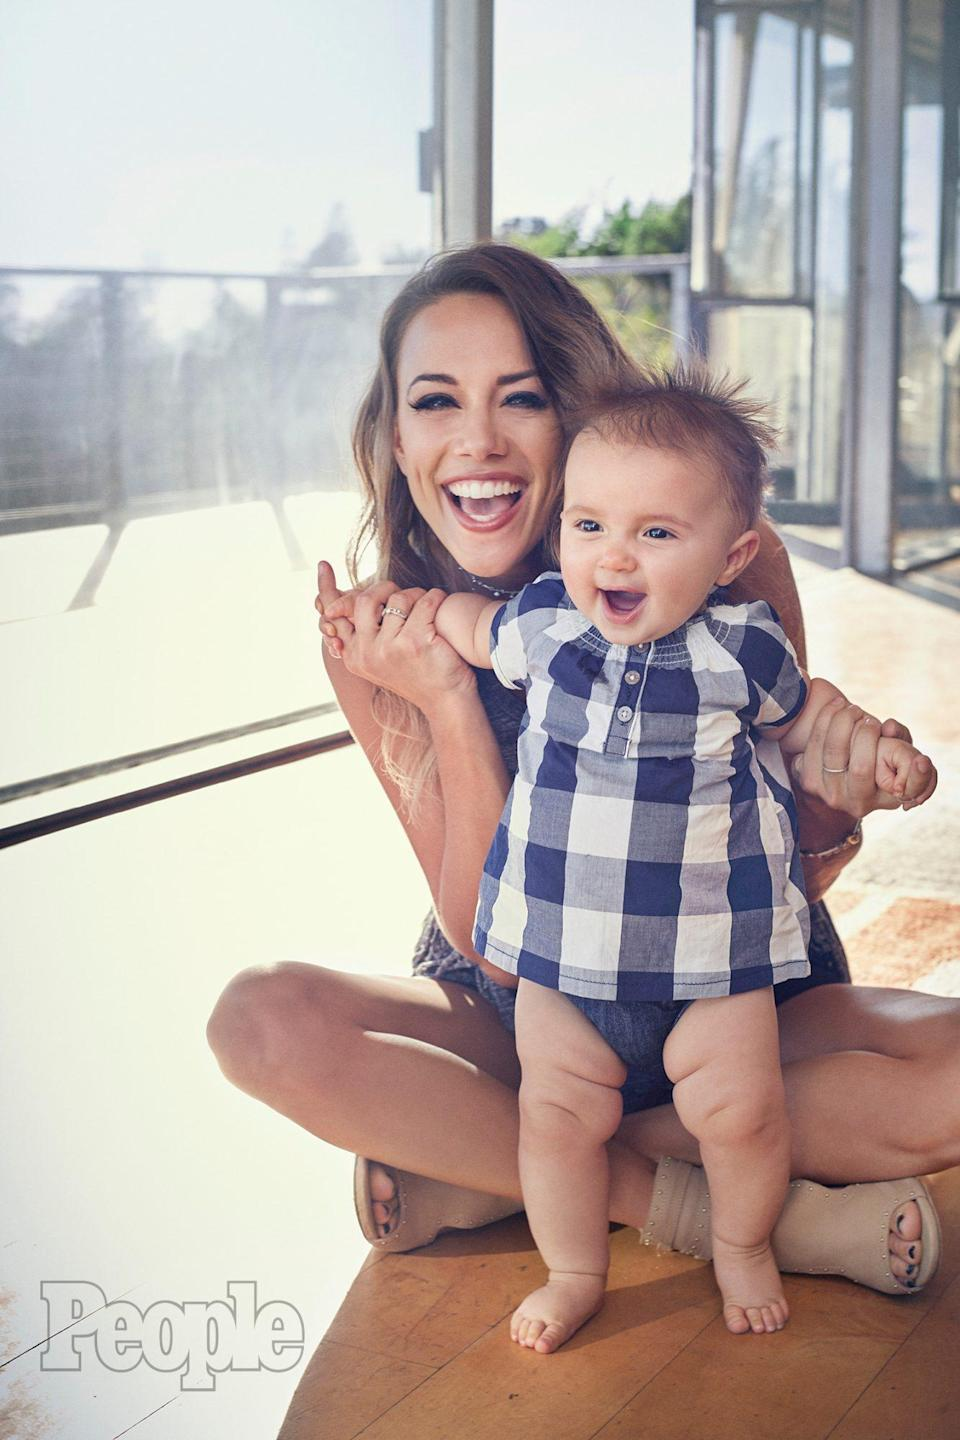 """<p>In August 2016, the couple announced they were <a href=""""https://people.com/country/jana-kramer-separates-from-mike-caussin-as-he-enters-rehab/"""" rel=""""nofollow noopener"""" target=""""_blank"""" data-ylk=""""slk:separating"""" class=""""link rapid-noclick-resp"""">separating</a> as Caussin entered treatment for undisclosed reasons — later revealed to be <a href=""""https://people.com/country/jana-kramer-mike-caussin-sex-addiction-relapses/"""" rel=""""nofollow noopener"""" target=""""_blank"""" data-ylk=""""slk:sex addiction"""" class=""""link rapid-noclick-resp"""">sex addiction</a> — at a rehabilitation center.</p> <p>""""This has been difficult for Jana but her priority is being there for Jolie,"""" a source close to Kramer told PEOPLE at the time. </p> <p>In October of that year, Kramer revealed to PEOPLE that they <a href=""""https://people.com/country/jana-kramer-mike-caussin-apologizes-cheating/"""" rel=""""nofollow noopener"""" target=""""_blank"""" data-ylk=""""slk:separated because of Caussin's infidelity"""" class=""""link rapid-noclick-resp"""">separated because of Caussin's infidelity</a>. </p> <p>""""Mike was the biggest of the betrayals because it was the first time in a relationship where I truly loved the version of me,"""" she said. """"I didn't feel I had to prove that I was good enough, I was vulnerable and finally at peace with myself. But I was fooled.""""</p> <p>For his part, Caussin told PEOPLE in a statement: """"I acknowledge that certain actions and behaviors have caused issues in my marriage and I am deeply sorry for the pain I have caused Jana. I have and will continue to take the steps needed to change who I am as a person in order to be a better husband and father.""""</p> <p>In September 2020, Kramer revealed that during this time, Caussin had <a href=""""https://people.com/country/jana-kramer-says-husband-mike-caussin-filed-for-divorce-when-rehab-she-was-on-dwts/"""" rel=""""nofollow noopener"""" target=""""_blank"""" data-ylk=""""slk:filed for divorce"""" class=""""link rapid-noclick-resp"""">filed for divorce</a>. </p>"""